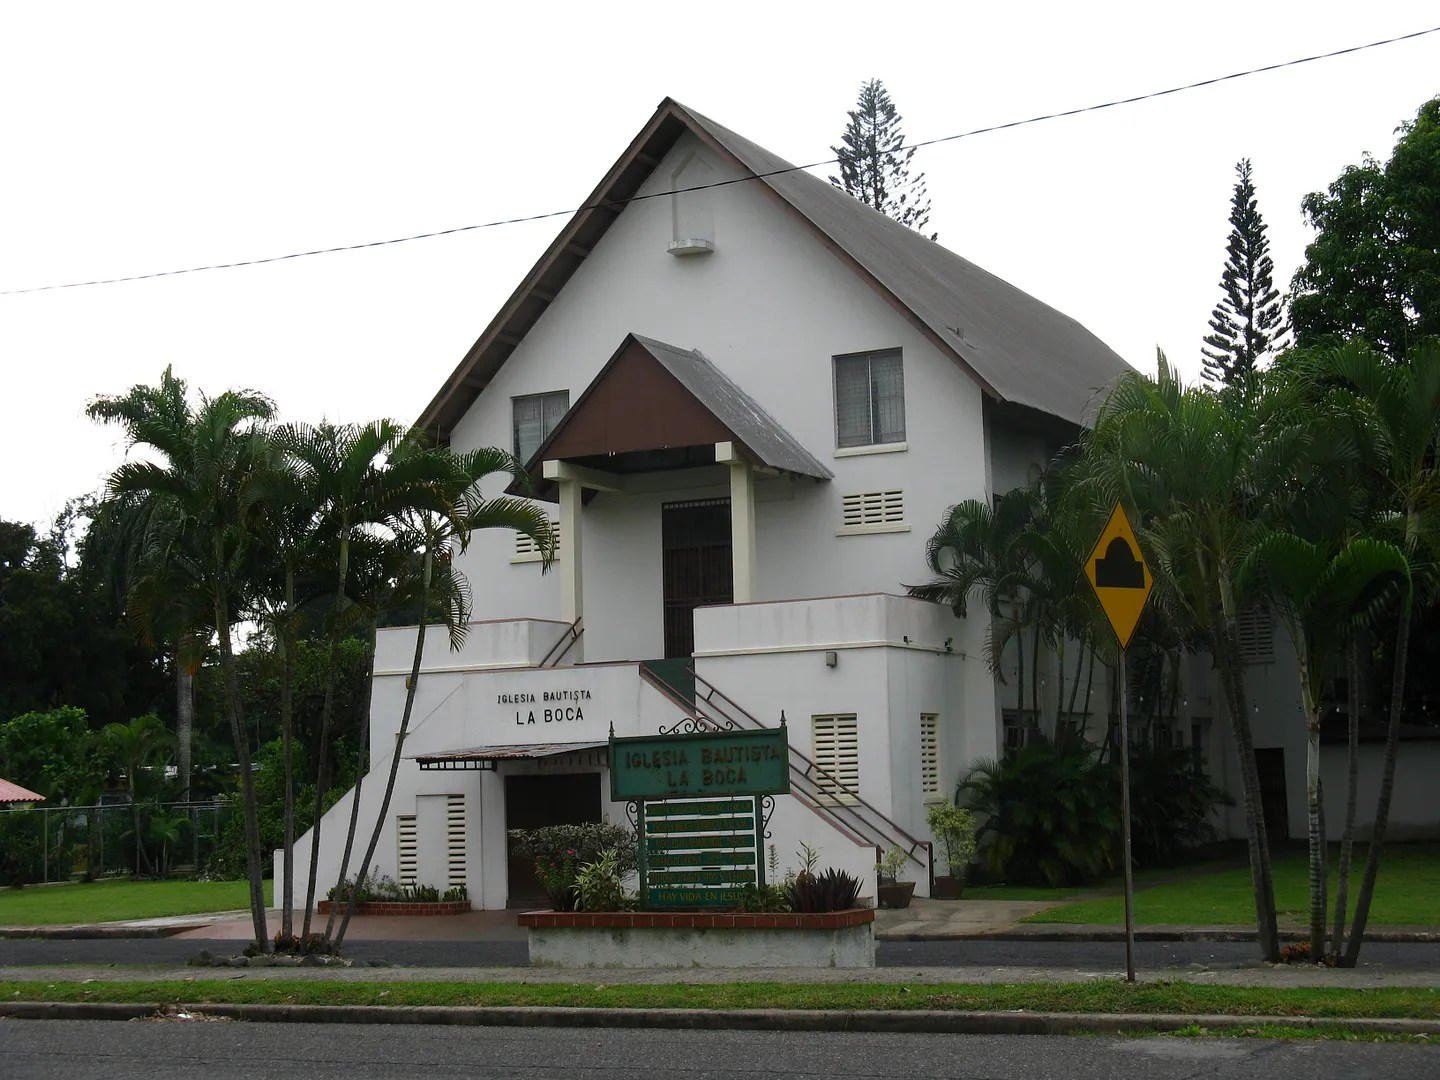 Photograph of the La Boca Baptist Church located at the entrance of the Panama Canal 3 miles downstream.  Notice the tall elegant pine trees in the background.  (Credit:  Omar Upegui R.)